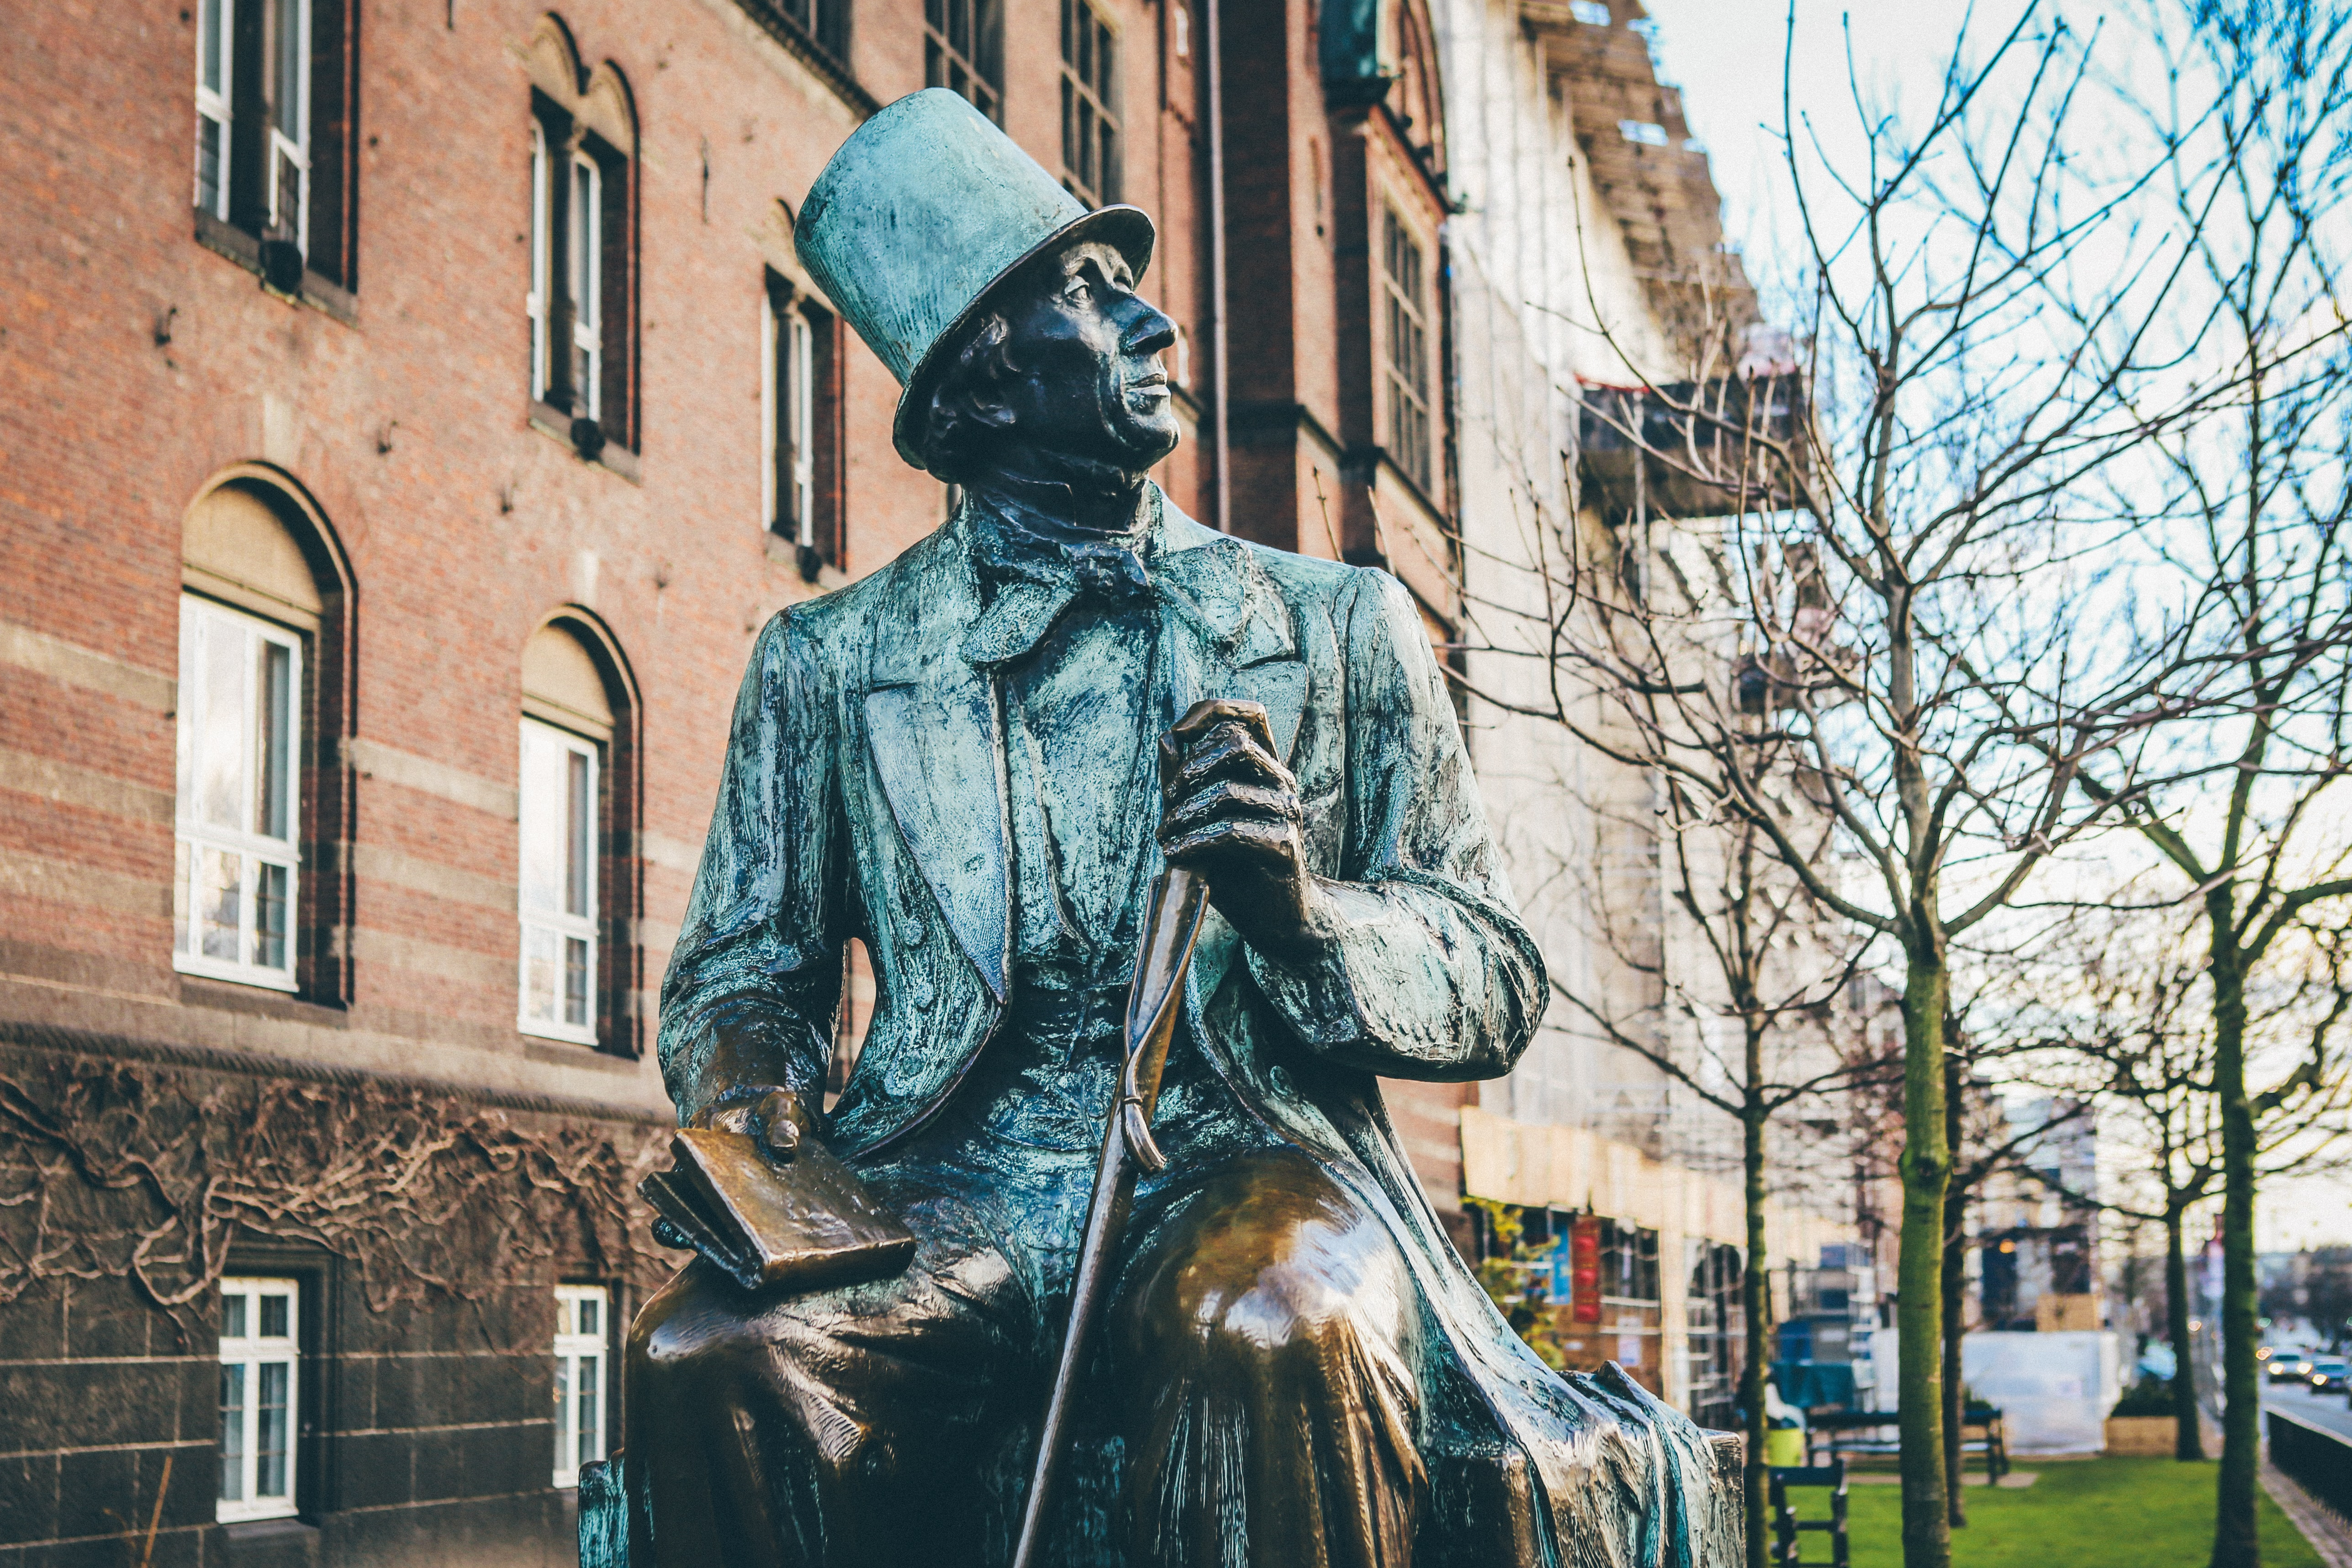 man in top hat and coat holding book and cane sitting statue